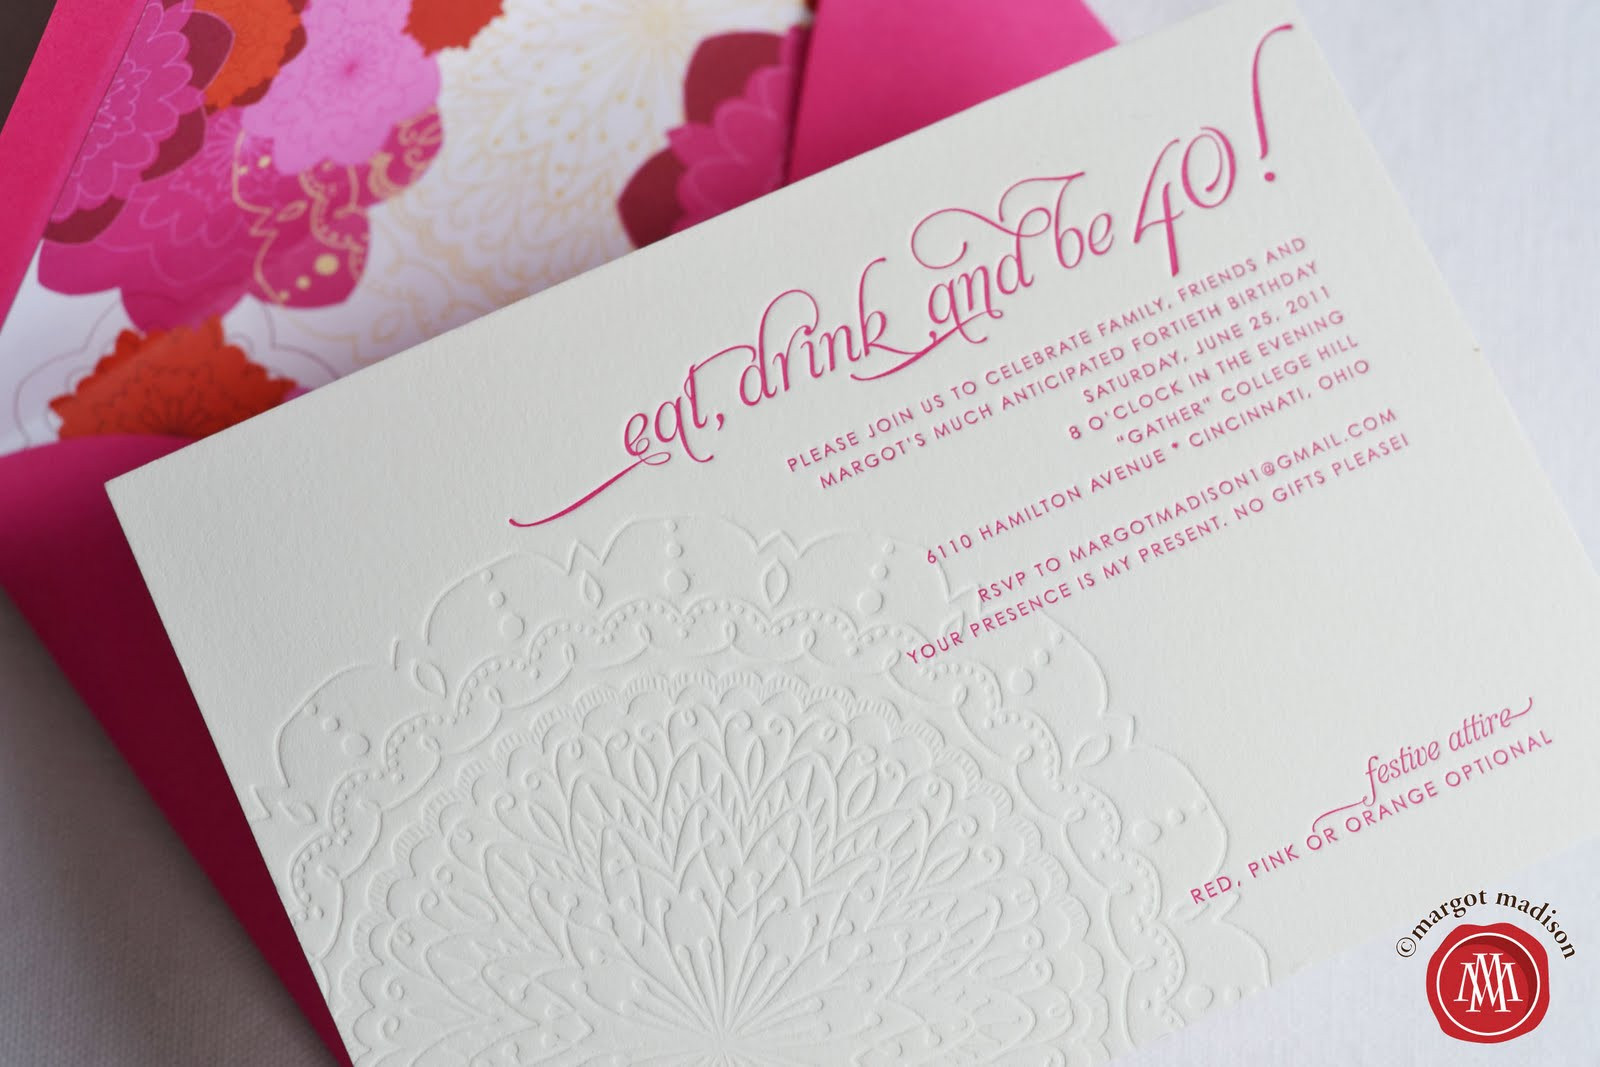 Best ideas about 40th Birthday Invitations . Save or Pin MargotMadison My 40th Birthday Party The Untold Story Now.